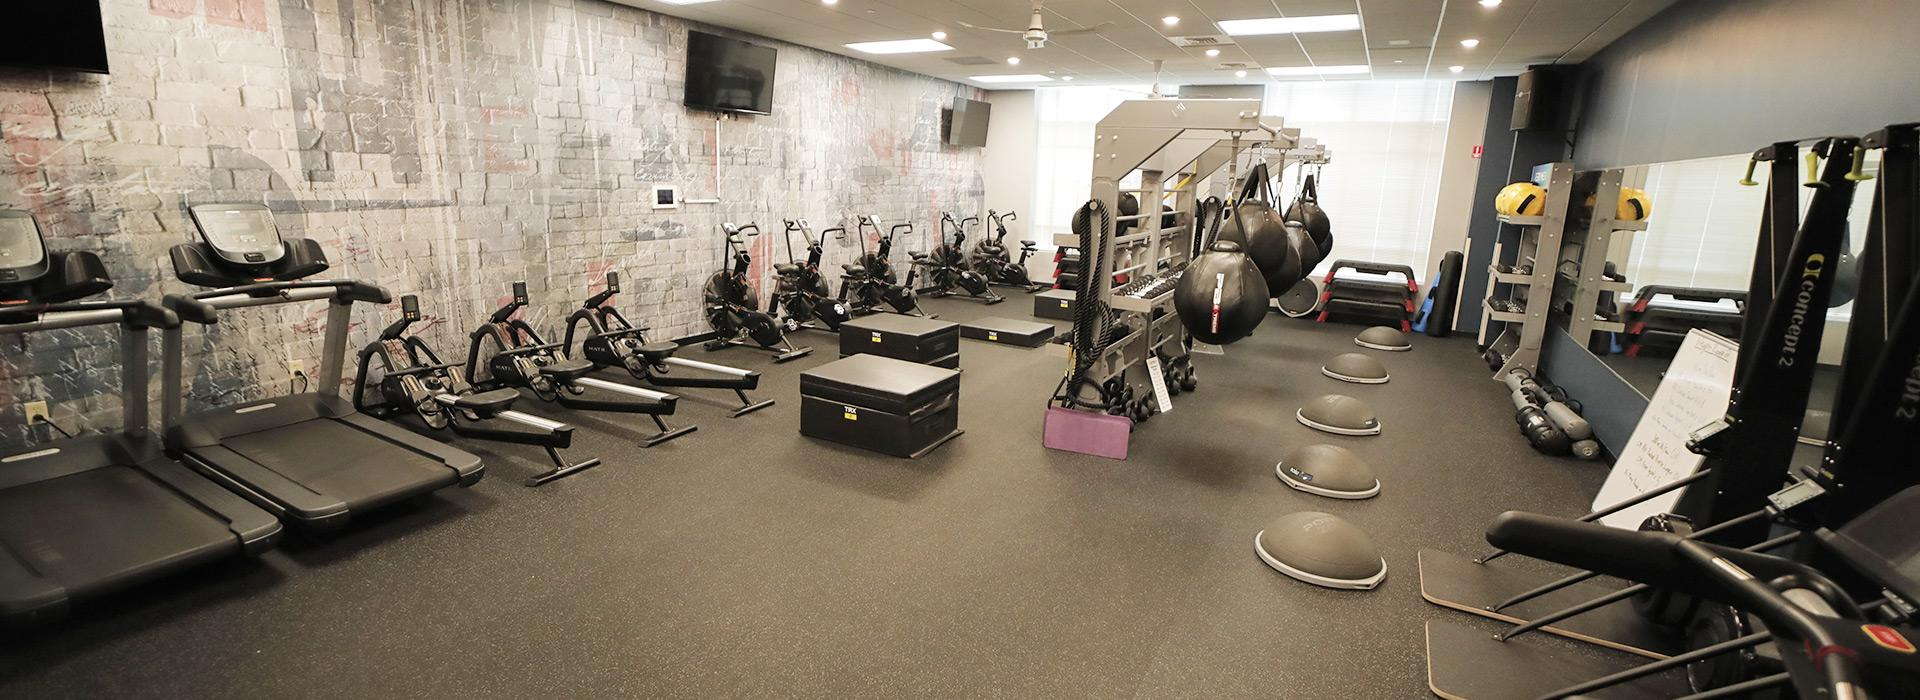 special group exercise room for regymen members